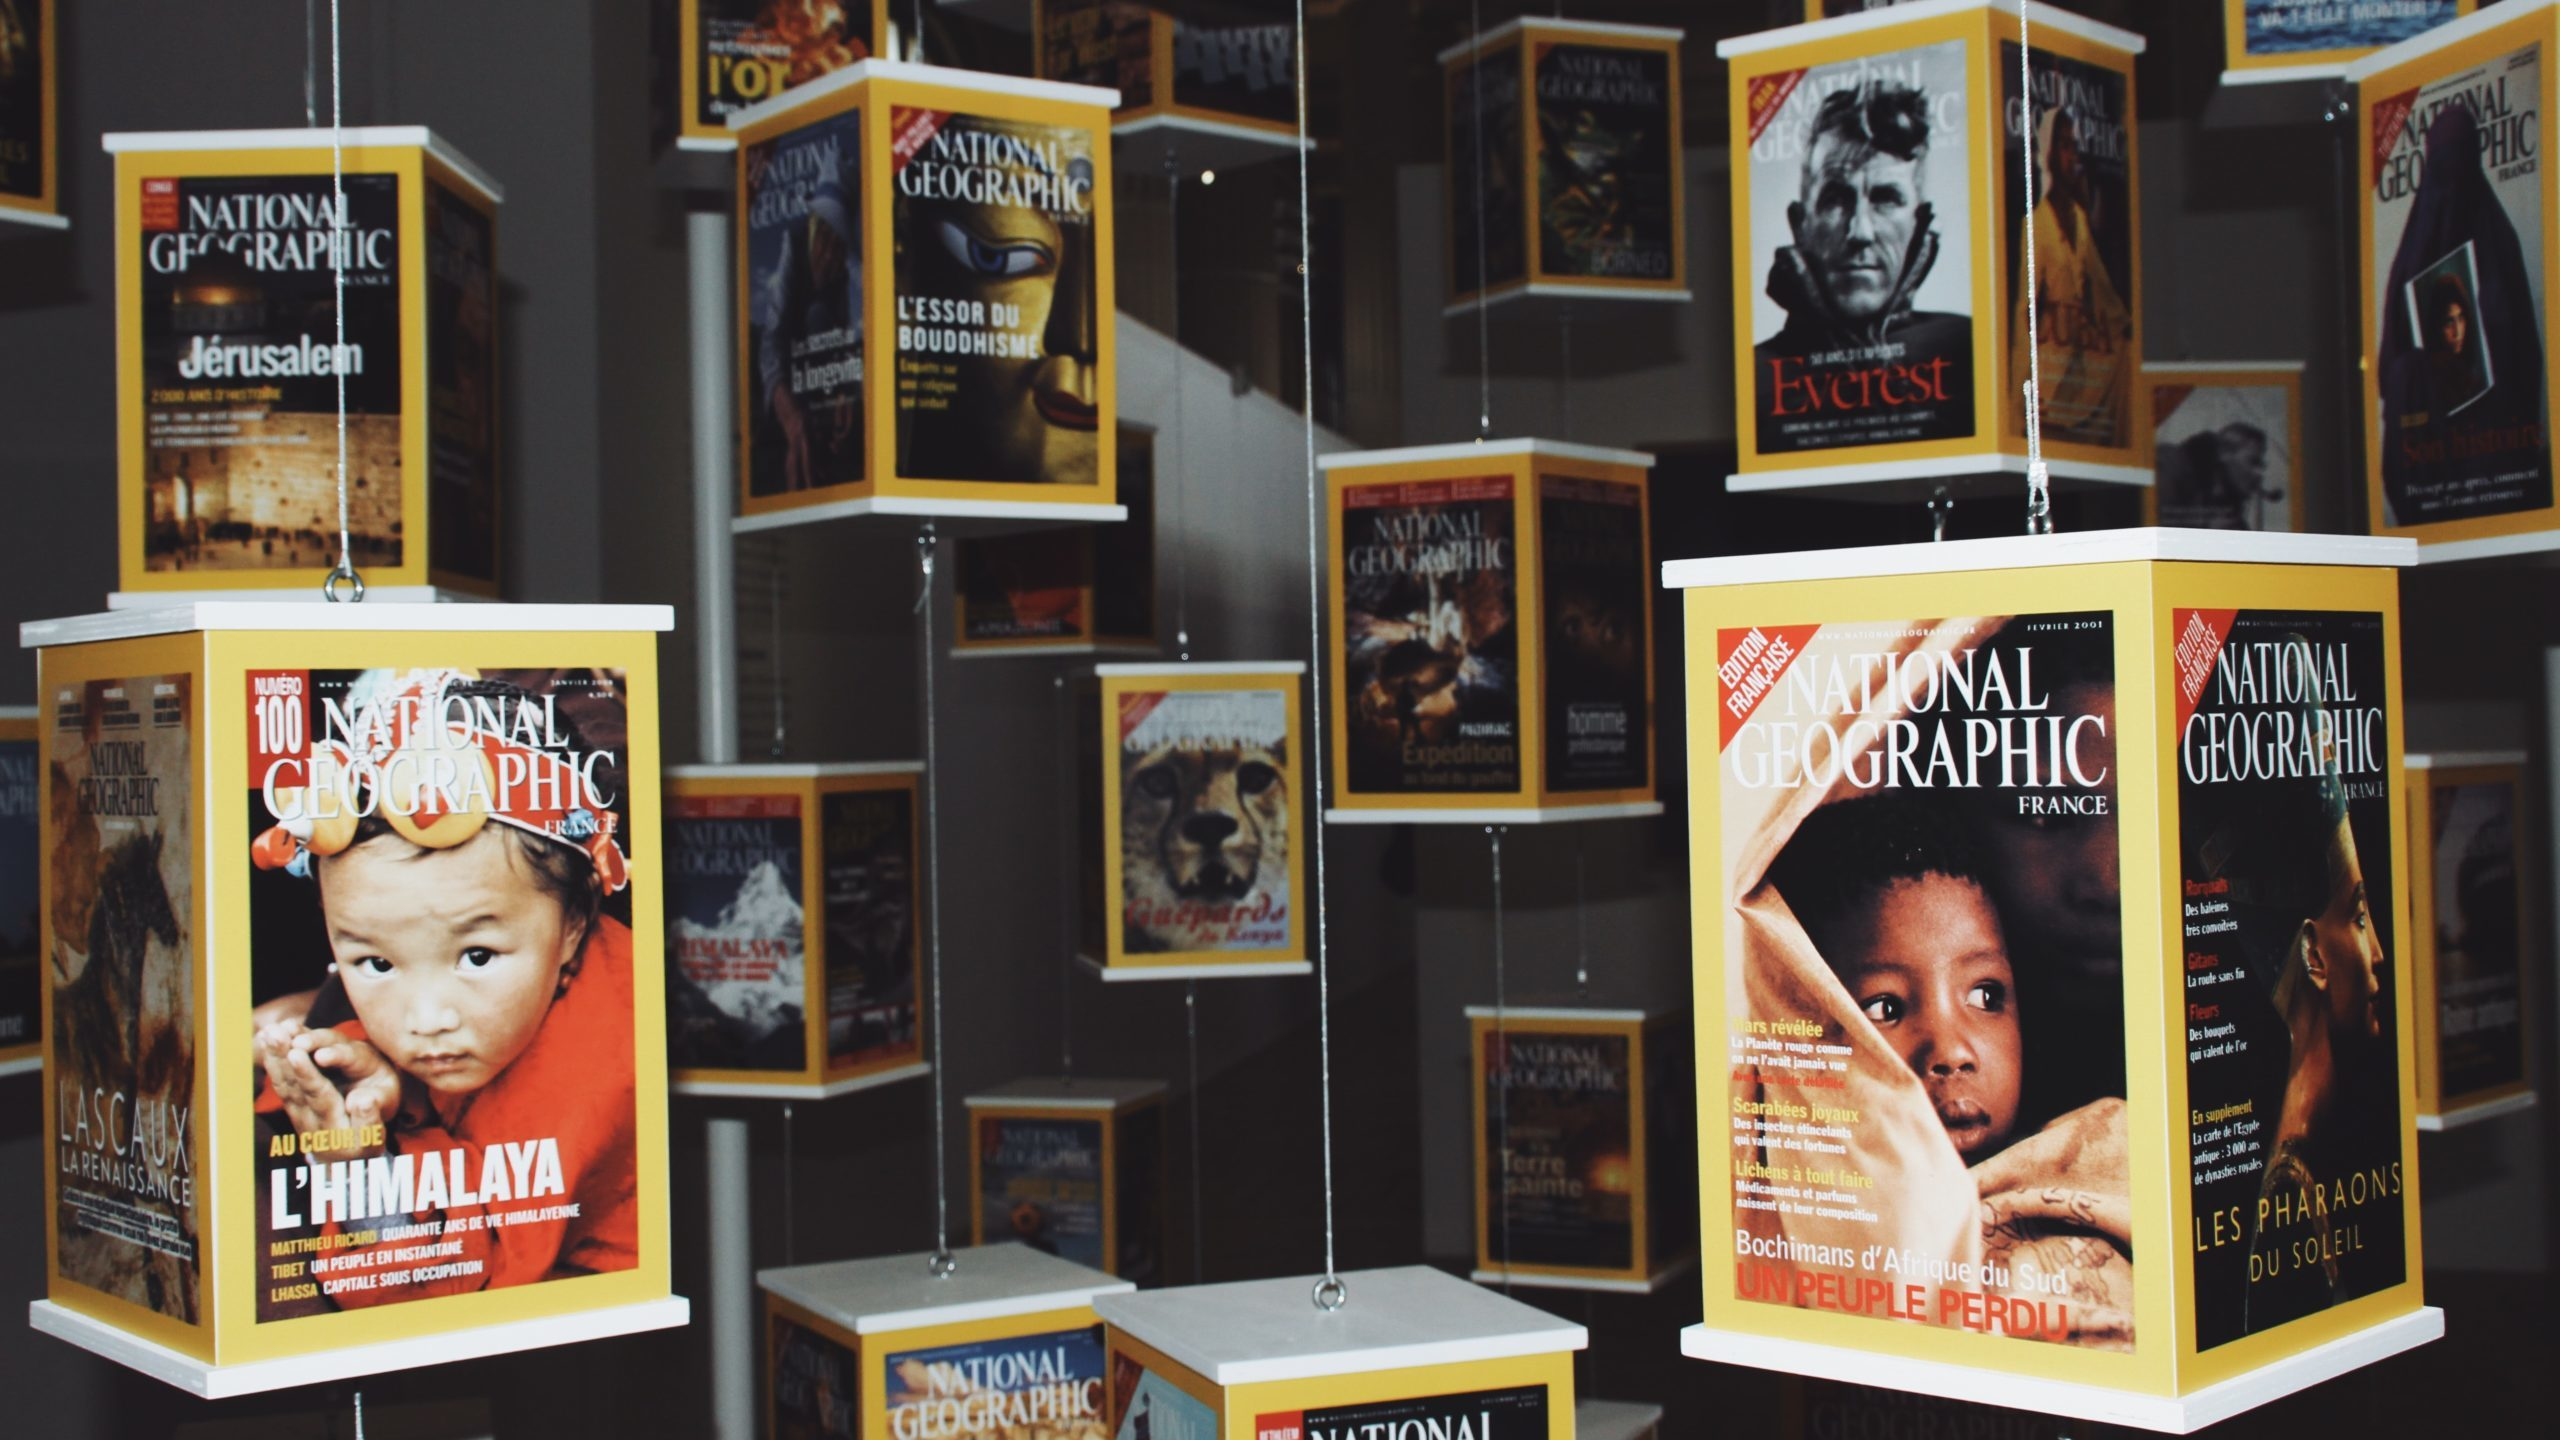 A display of issues of National Geographic magazine in a museum